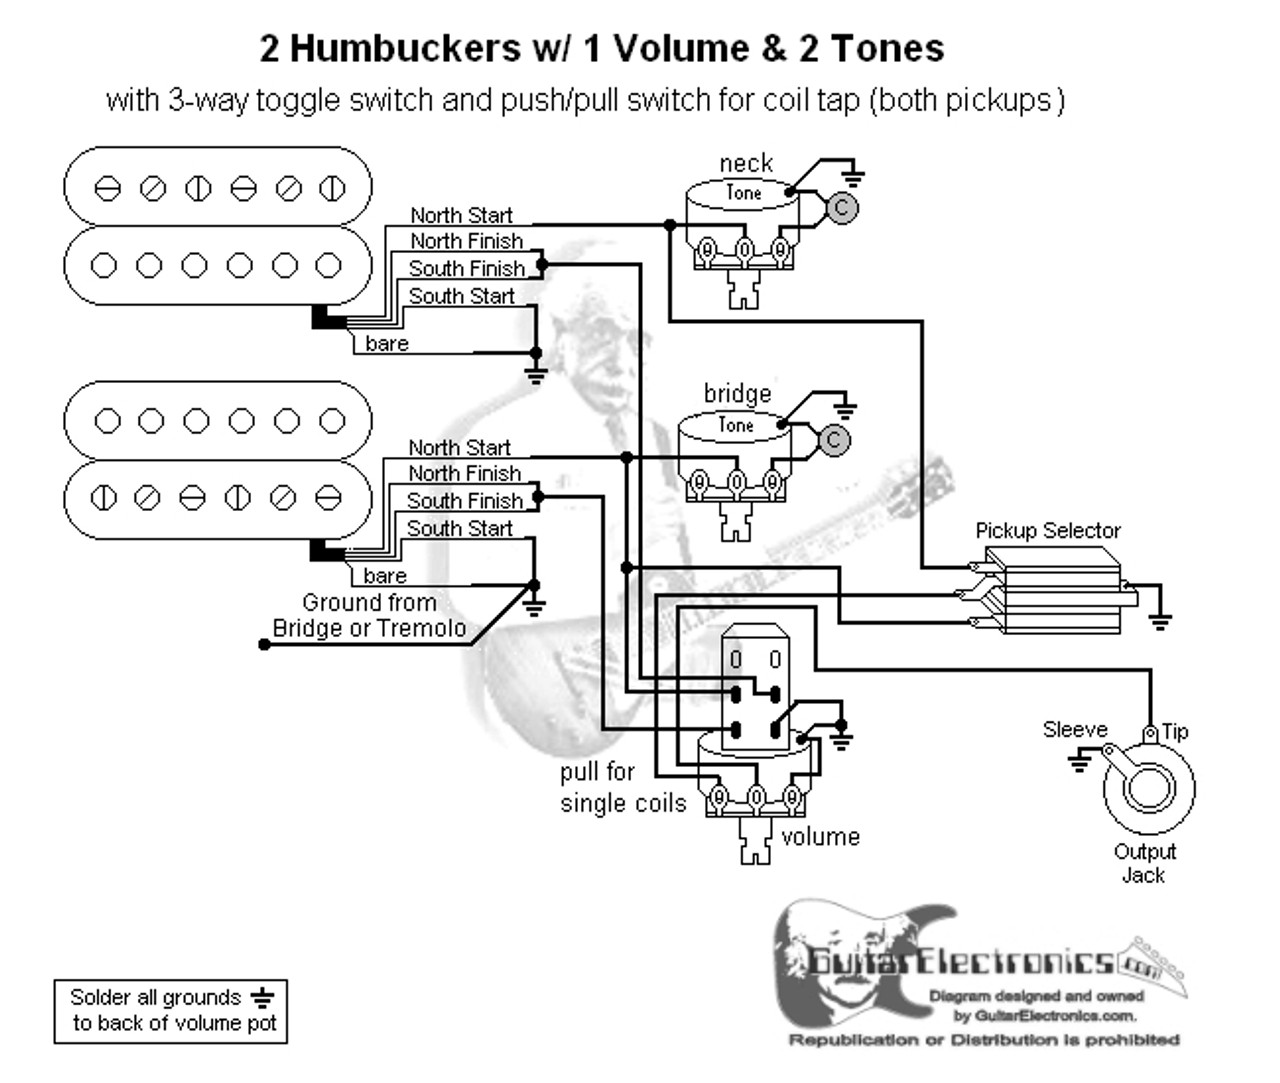 hight resolution of 2 humbuckers 3 way toggle switch 1 volume 2 tones coil tap wiring diagram 2 humbuckers 3way toggle switch 1 volume 2 tones coil